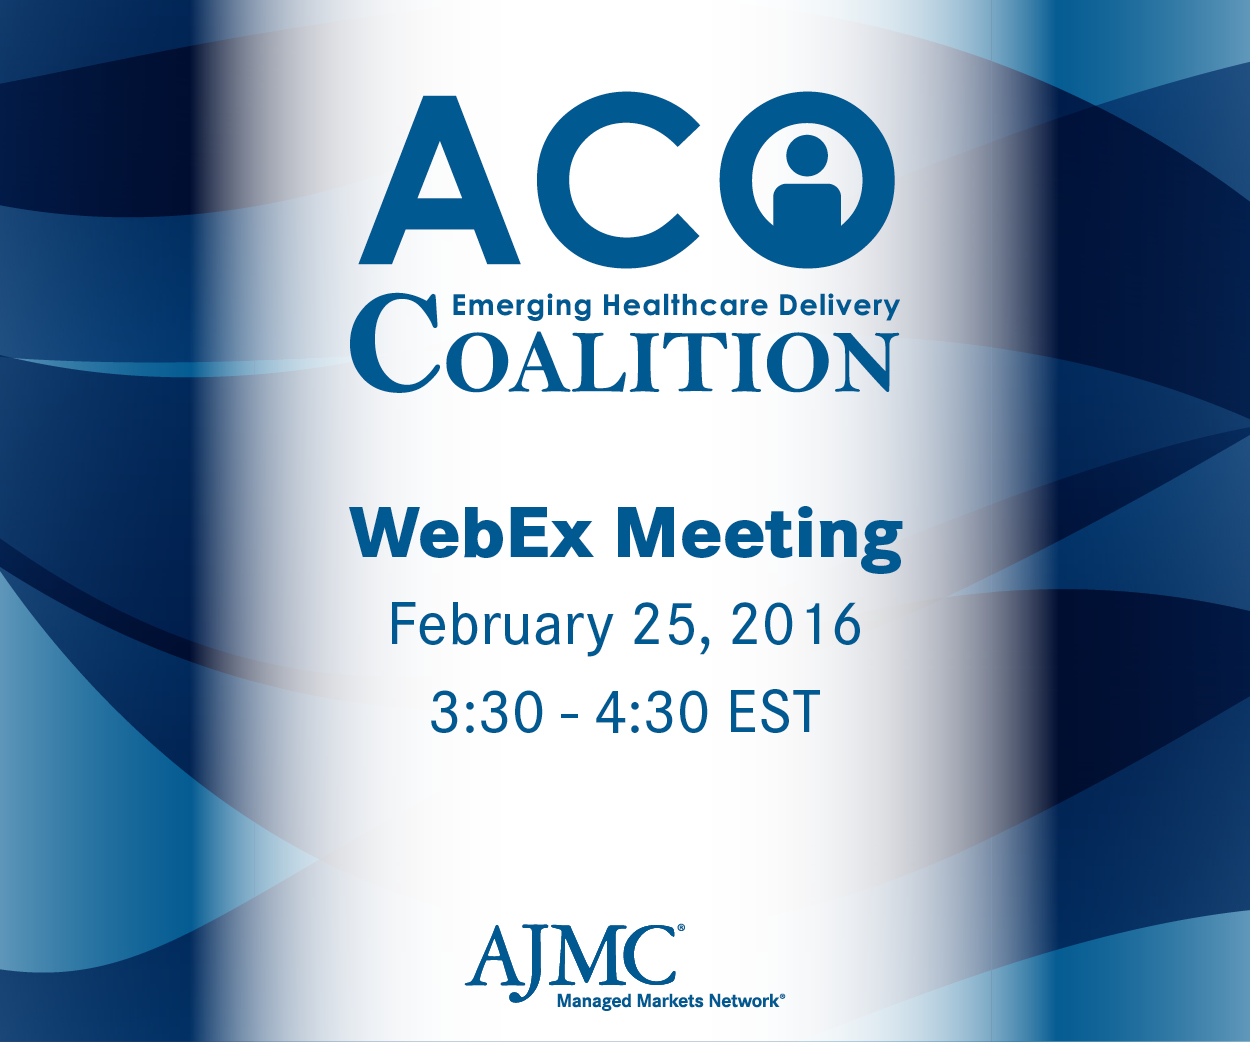 WebEx Meeting Register | February 25th, 2016